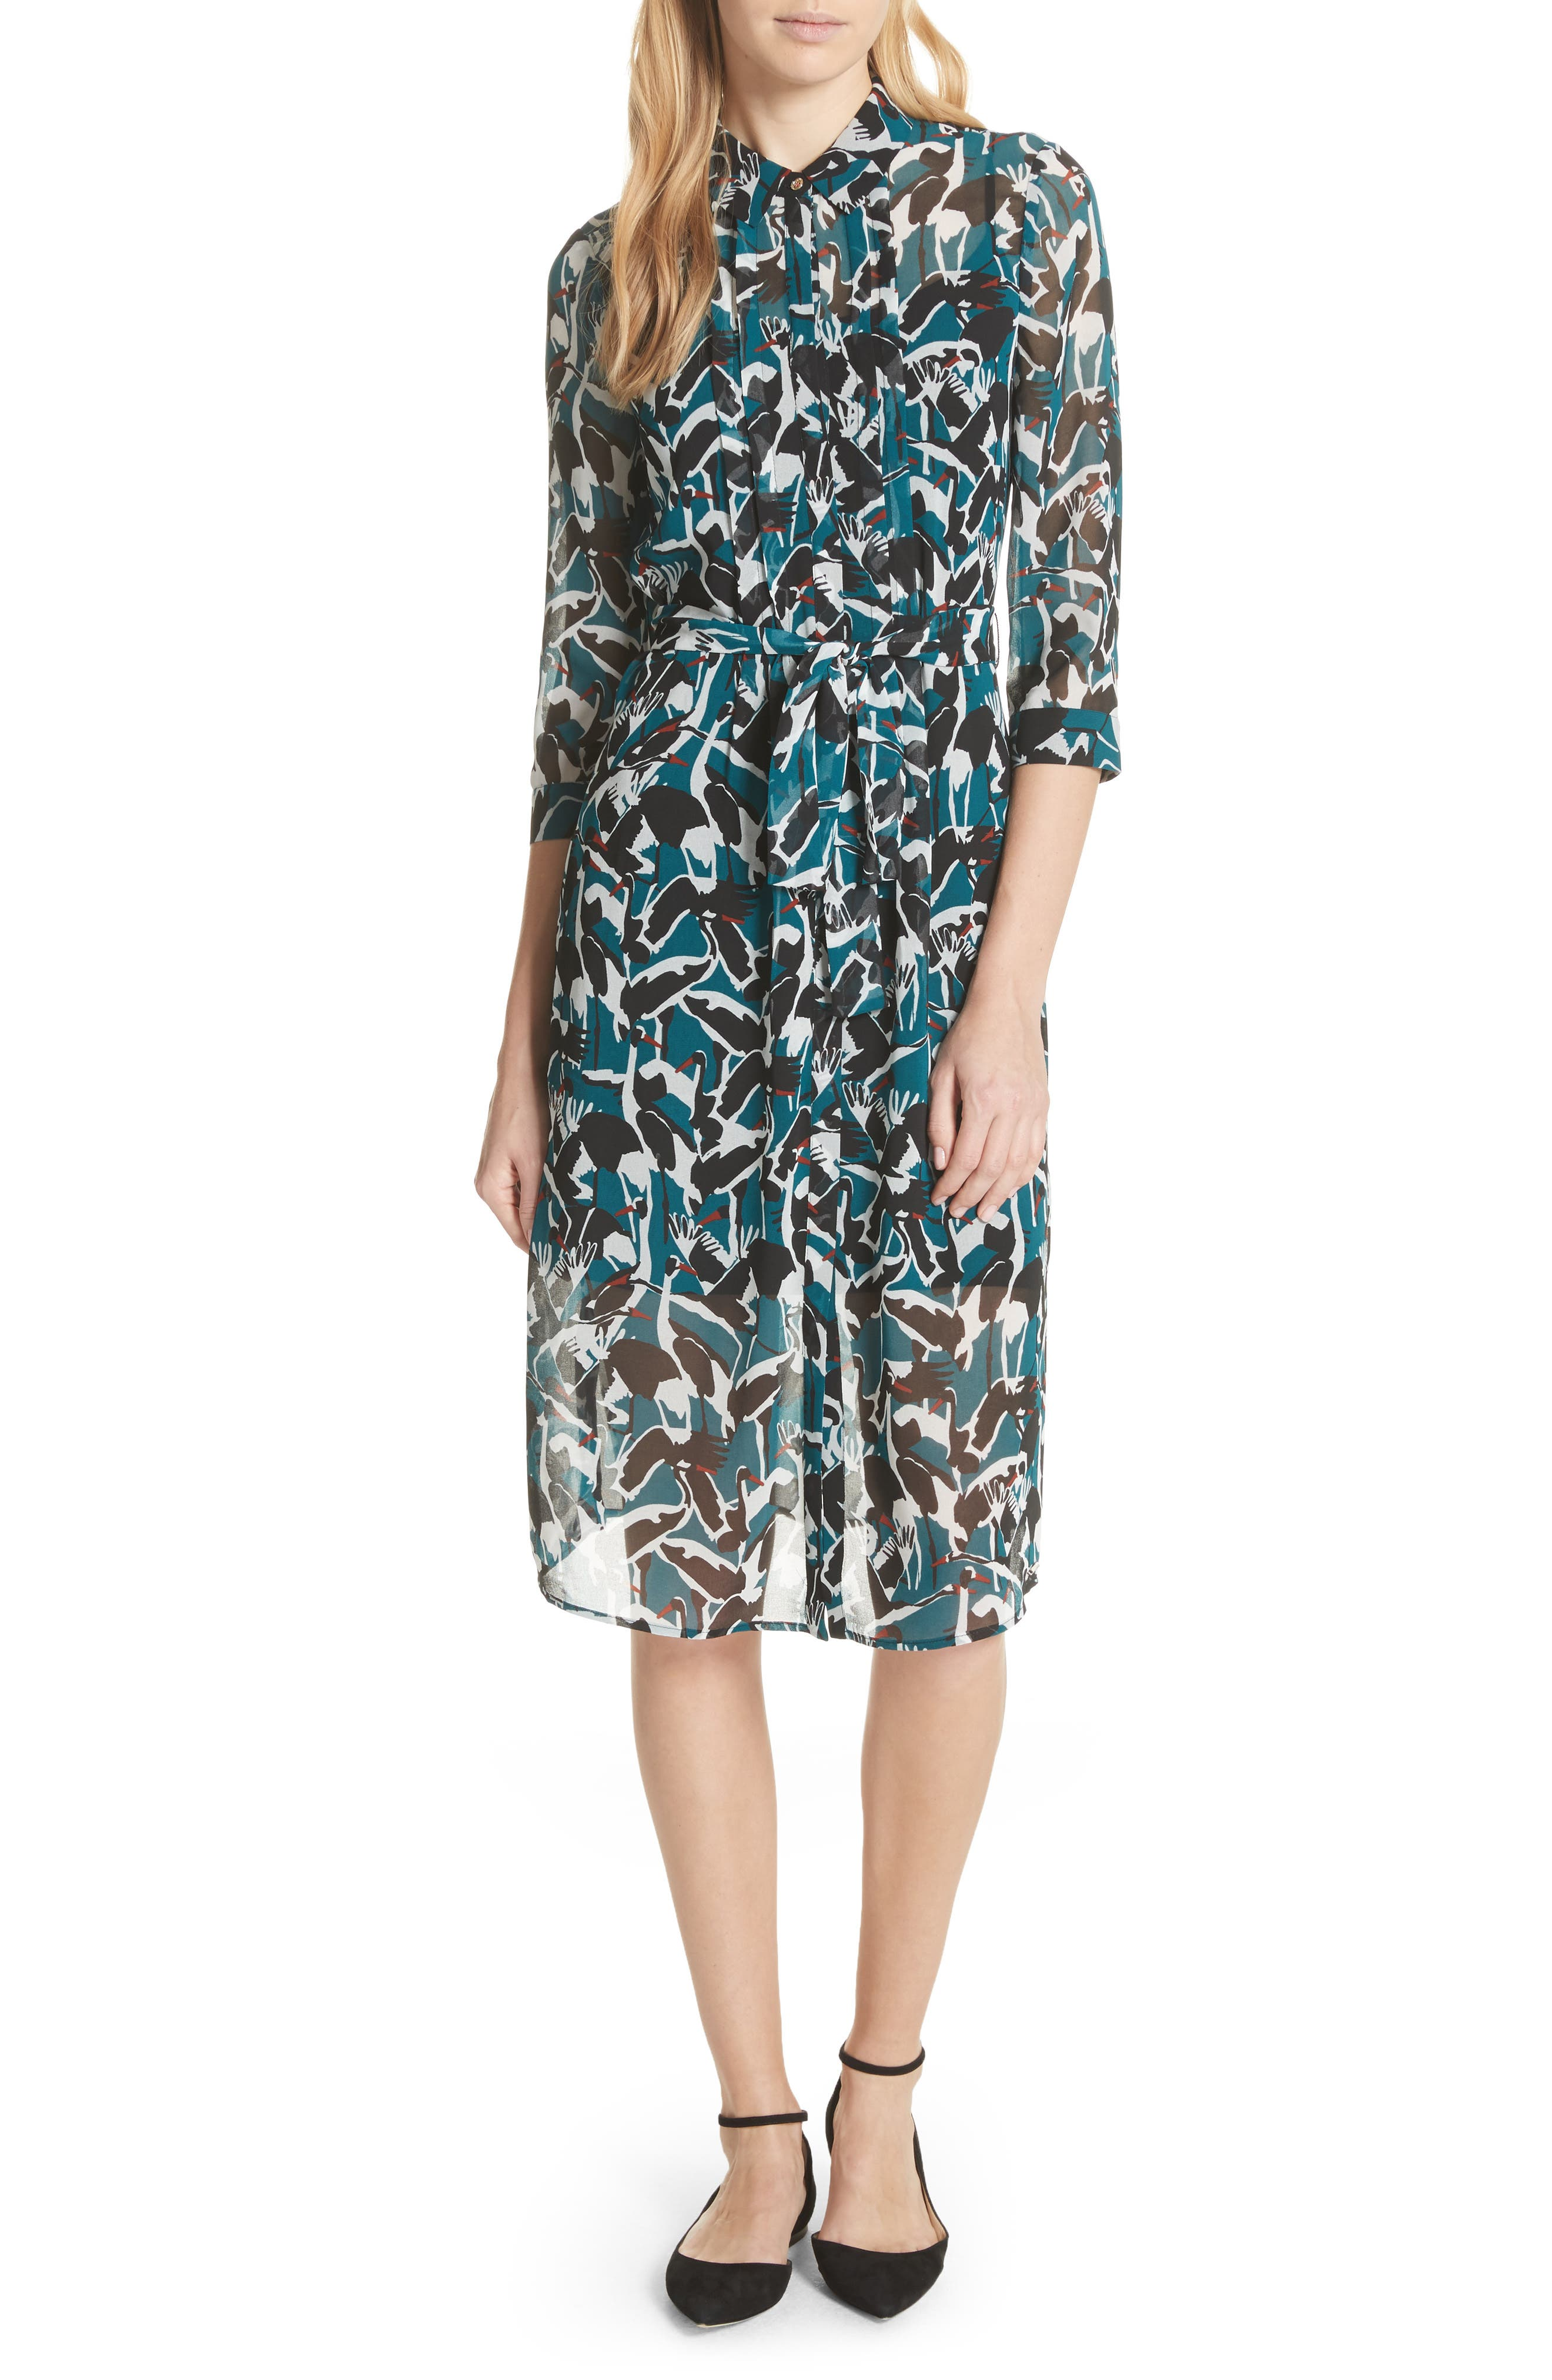 Colour by Numbers Crane Shirtdress,                             Main thumbnail 1, color,                             440